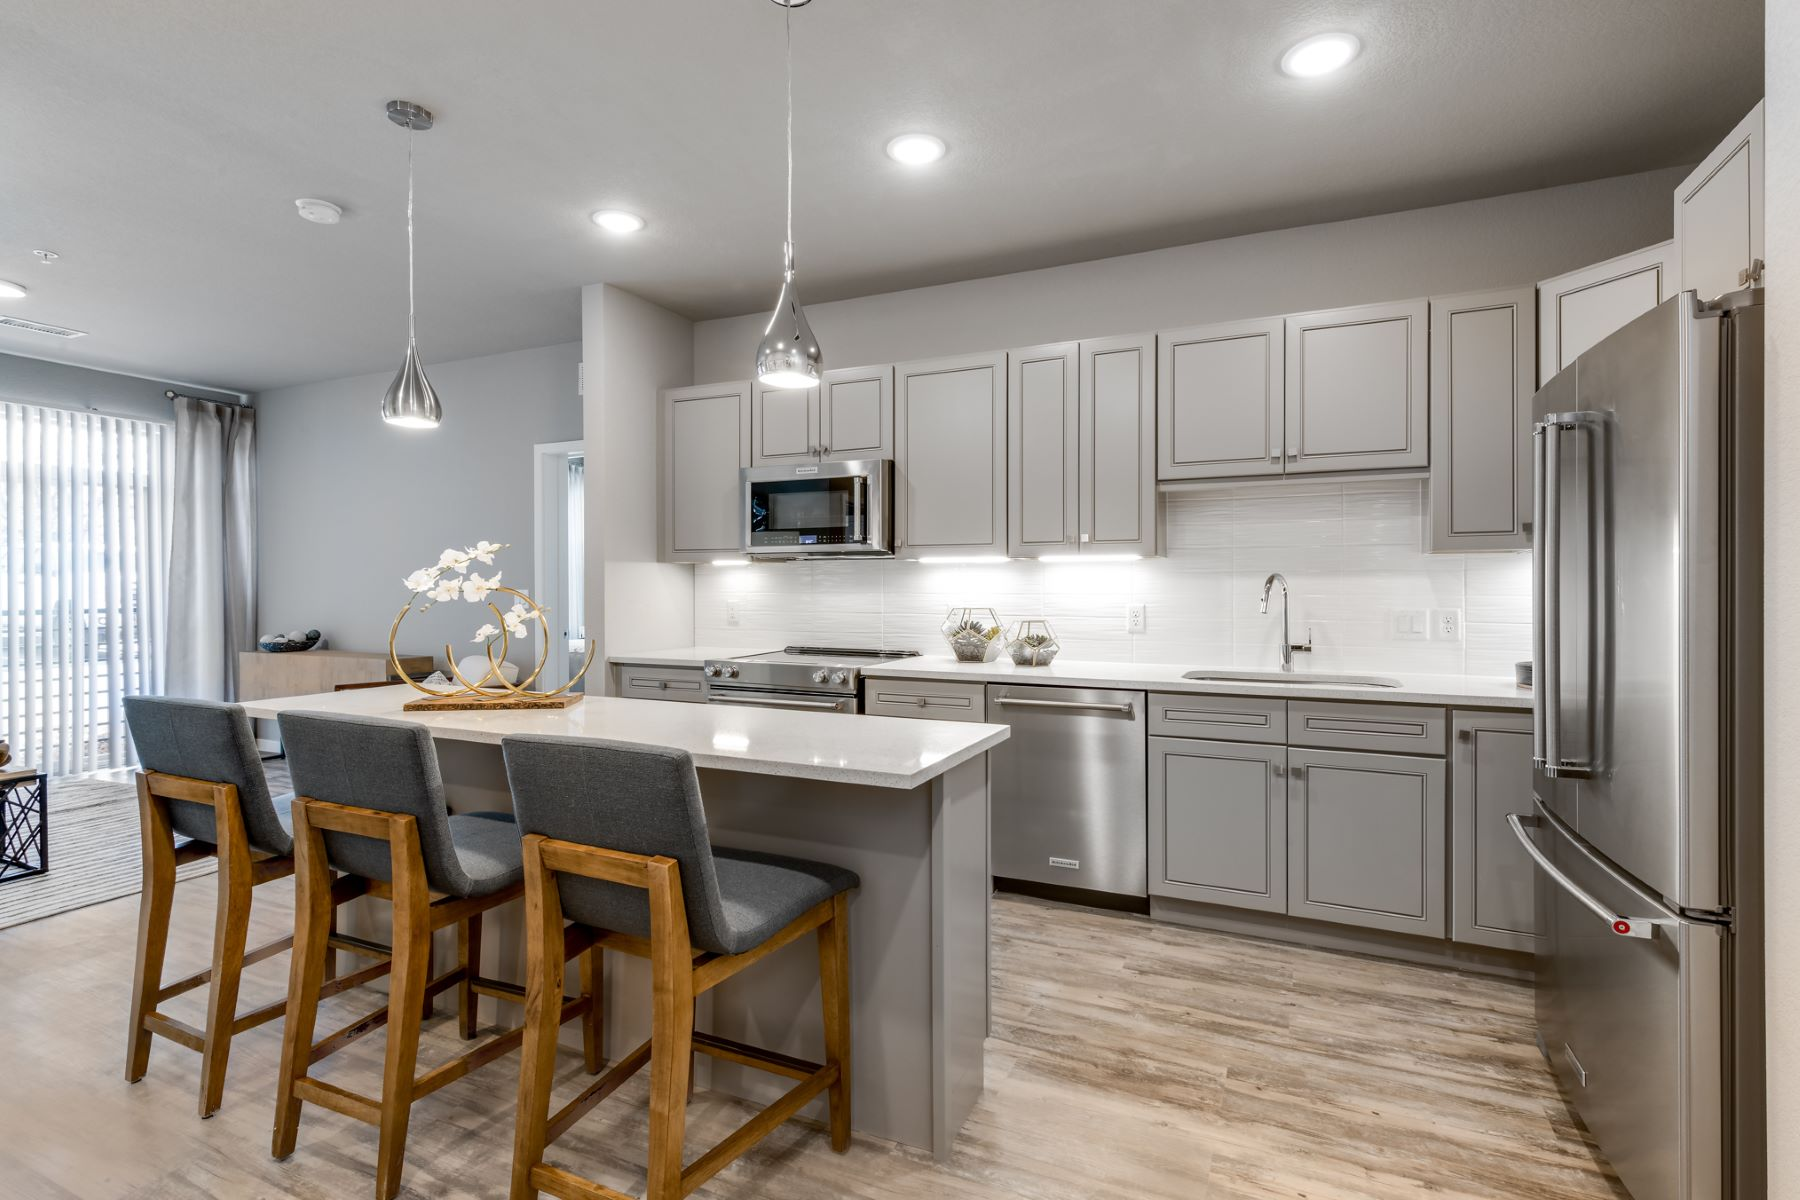 Additional photo for property listing at 155 South Monaco Parkway #201 155 S Monaco Pkwy #201 Denver, Colorado 80224 United States